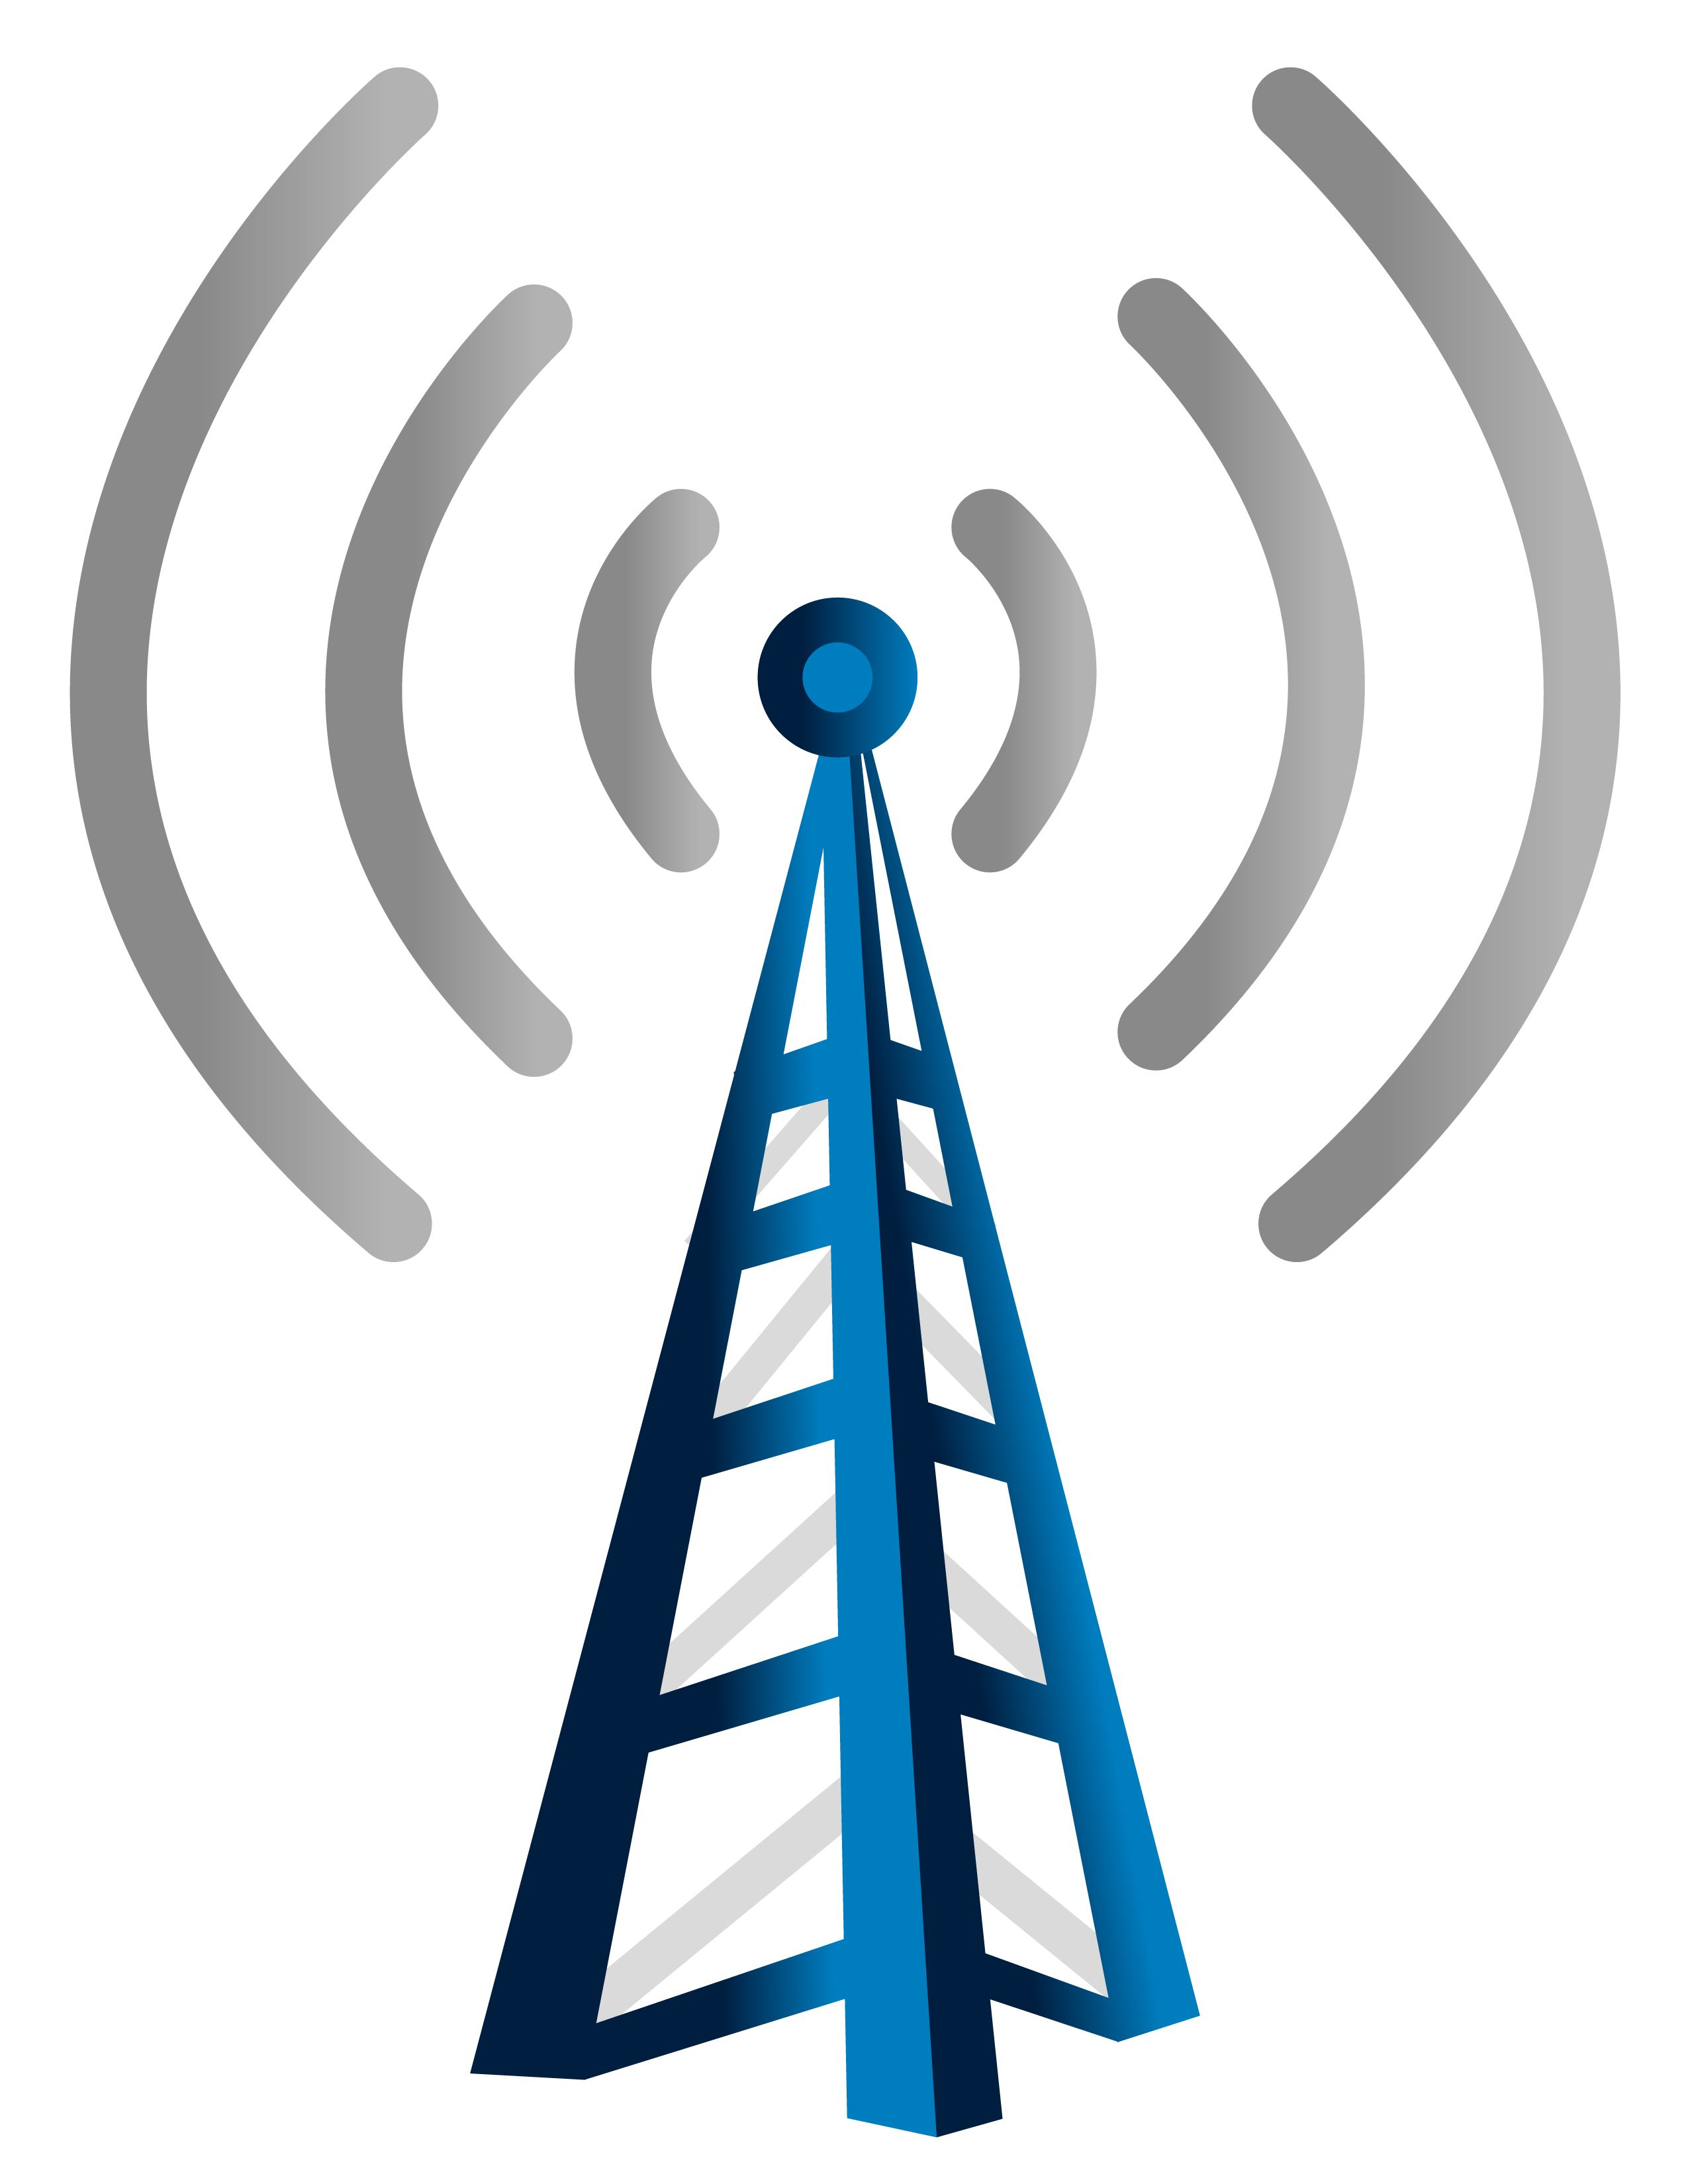 Cell Phone Tower Icon Illustration artwork drawing